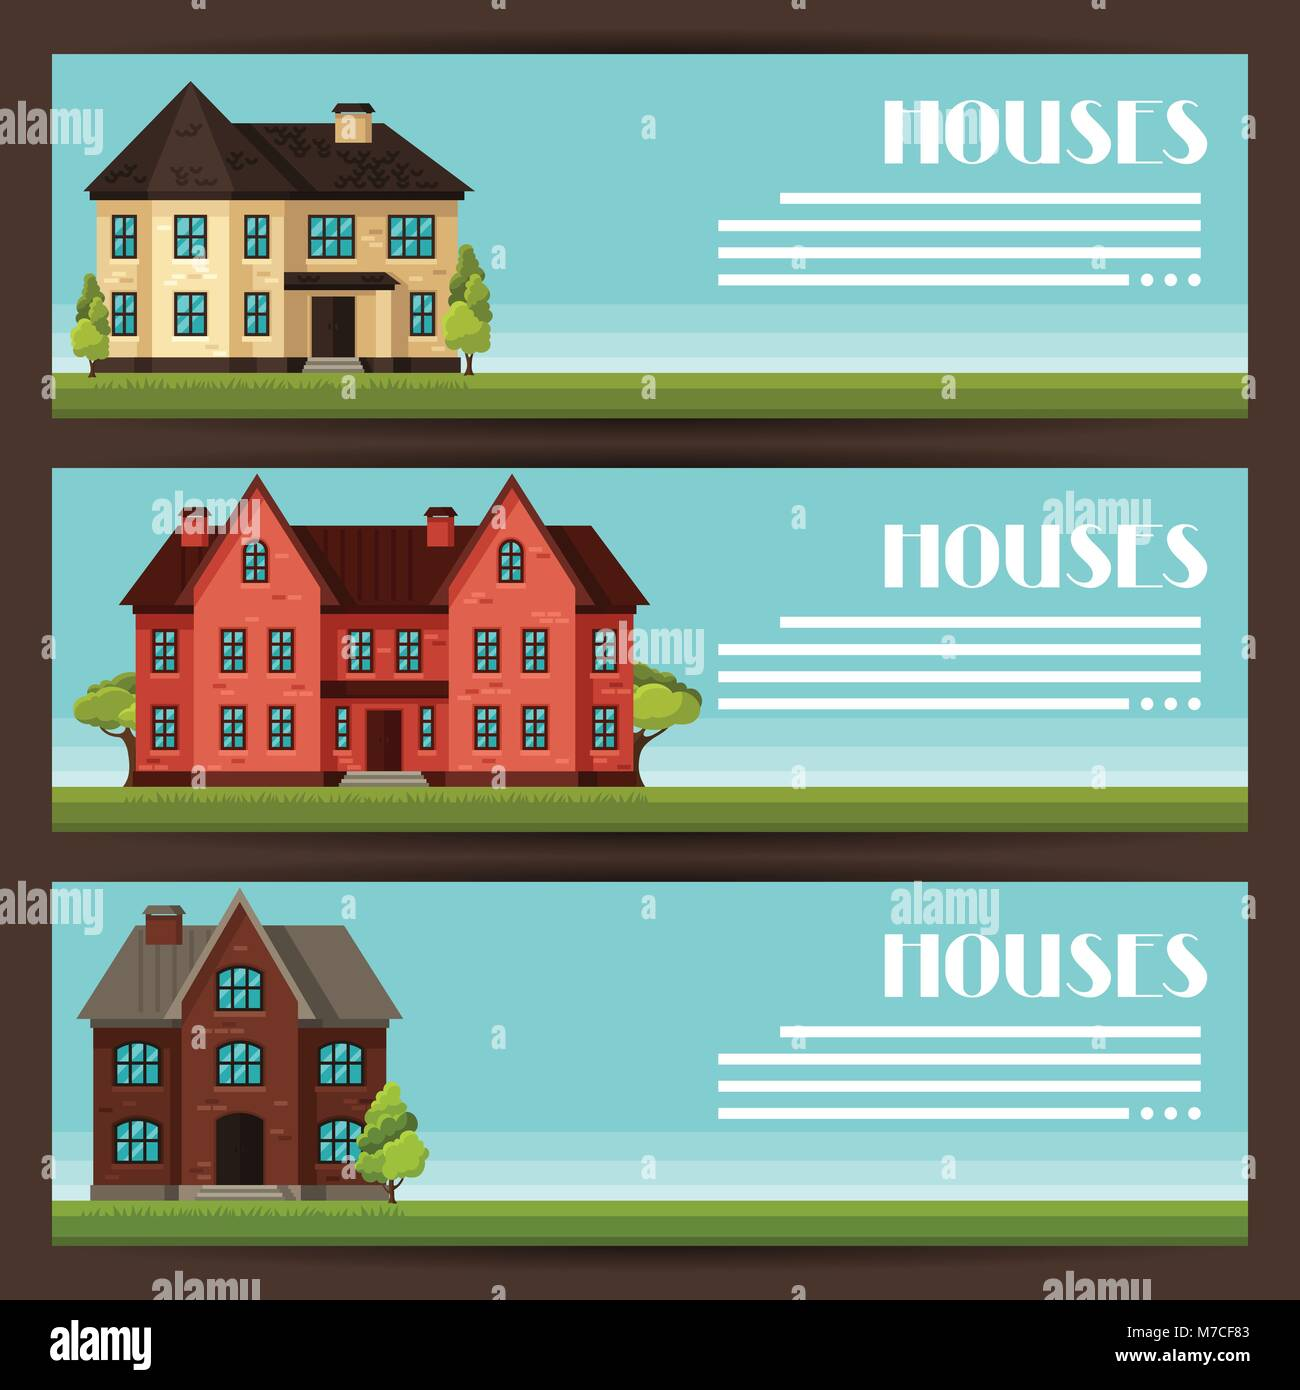 Town horizontal banners design with cottages and houses - Stock Vector